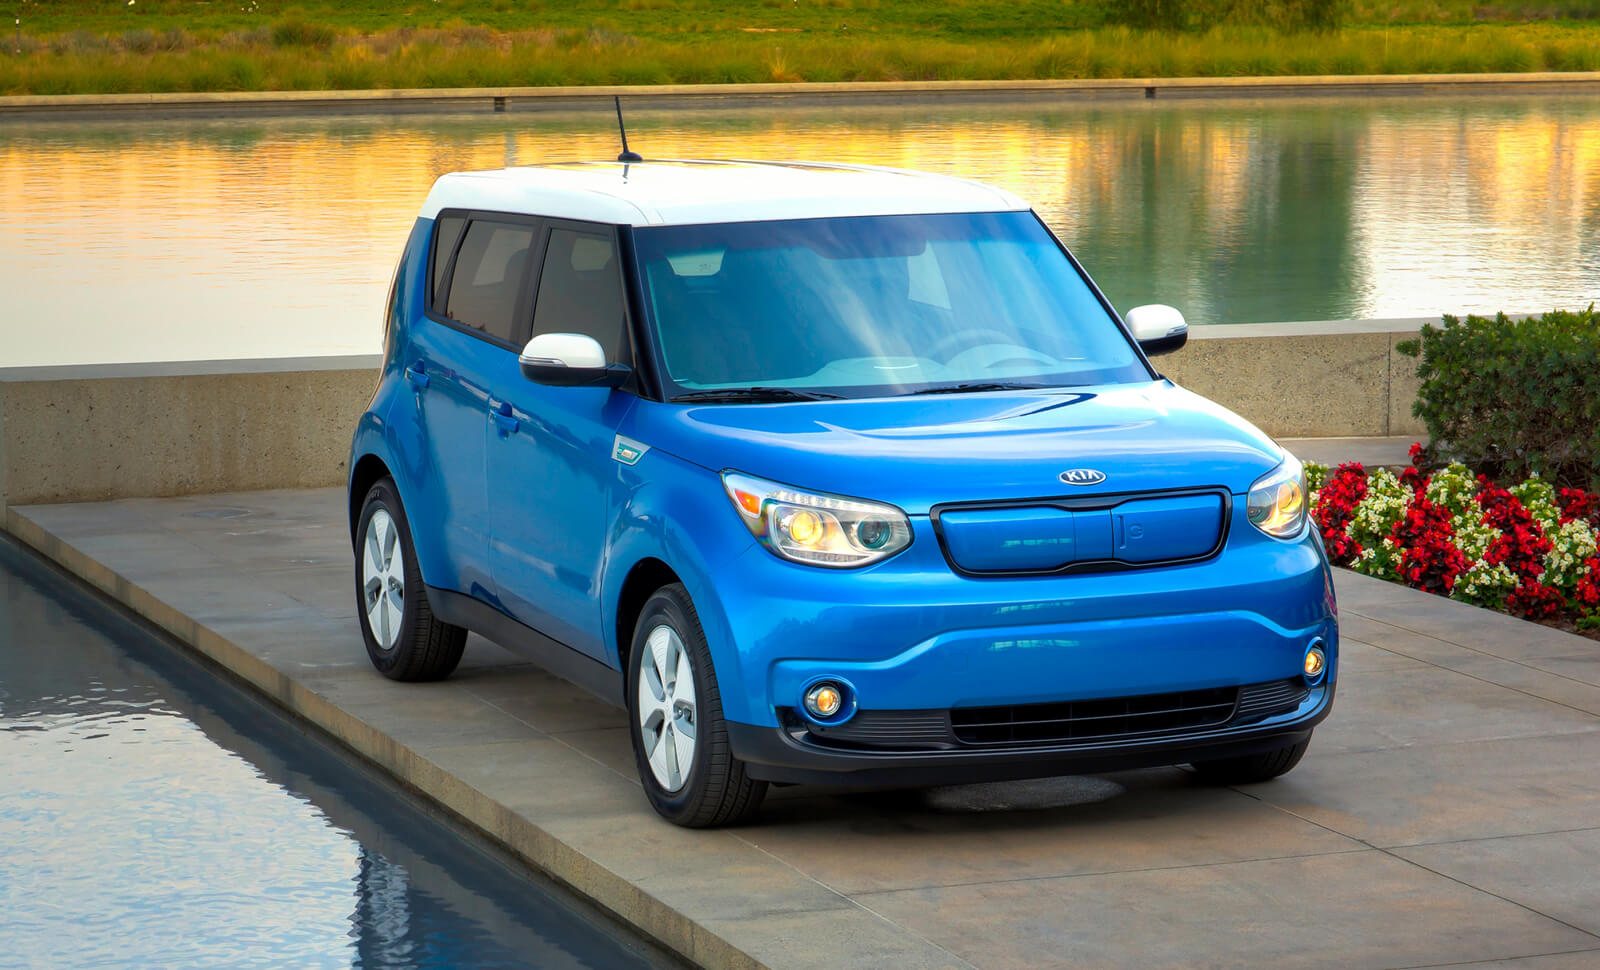 The Kia Soul EV is a BEV